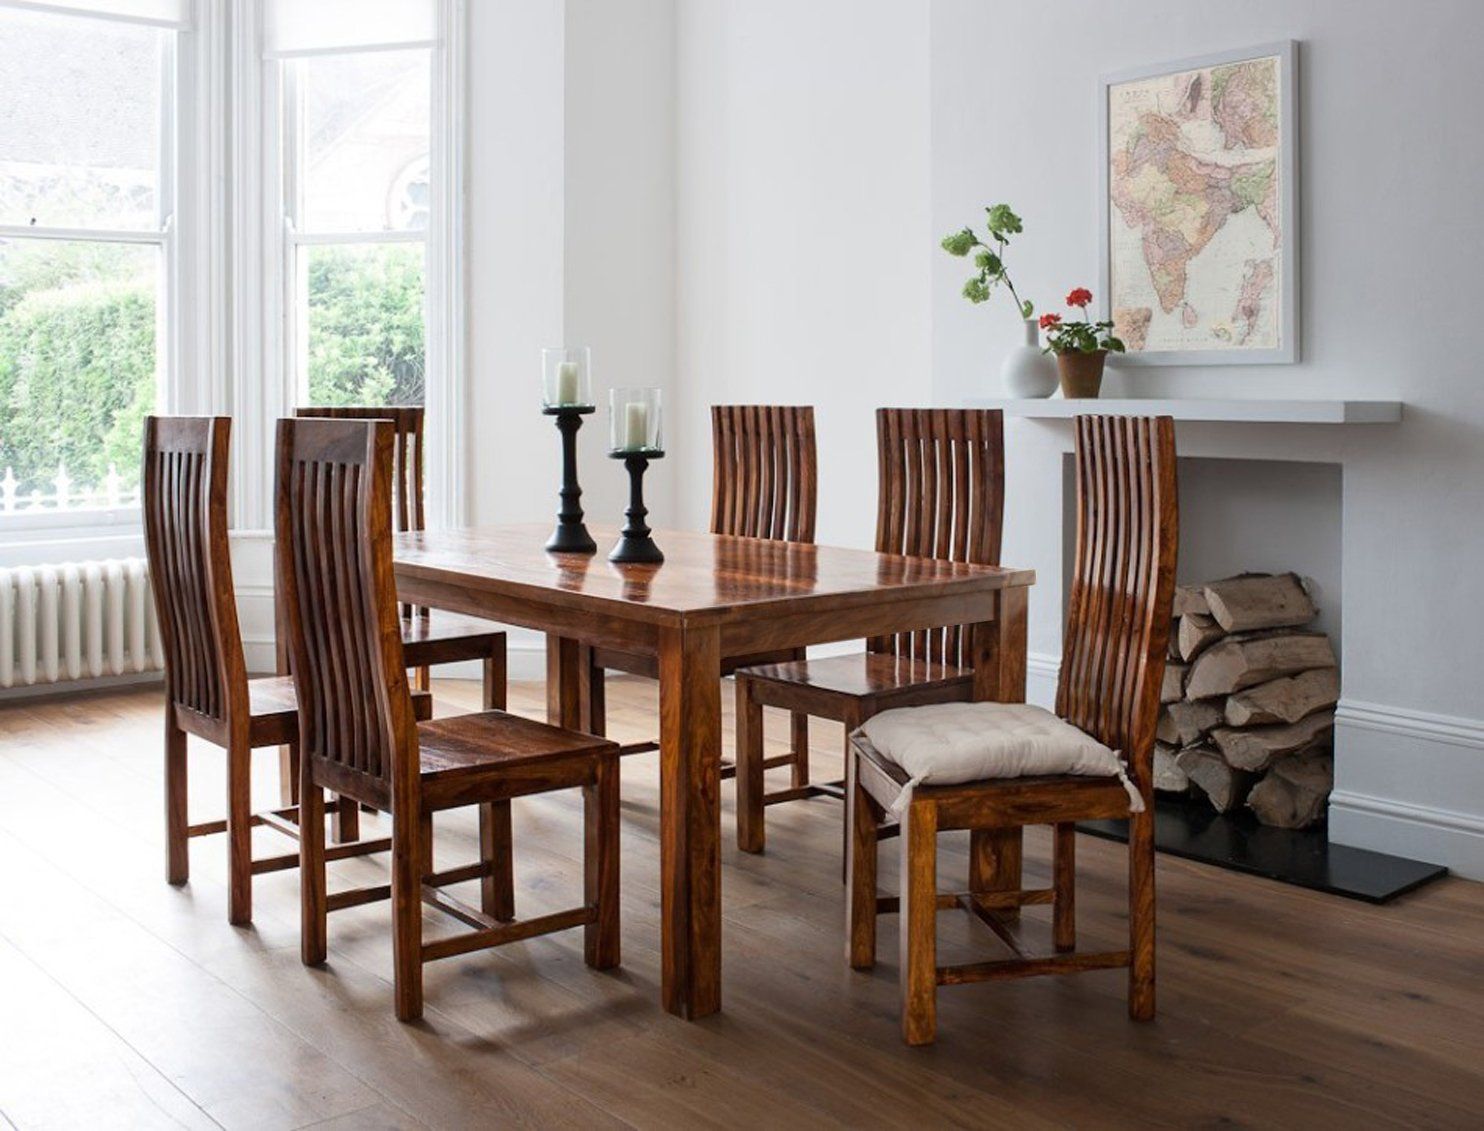 Nilkamal Kitchen Furniture Handcrafted Sheesham Wood Dining Set With 6 Chairs Best